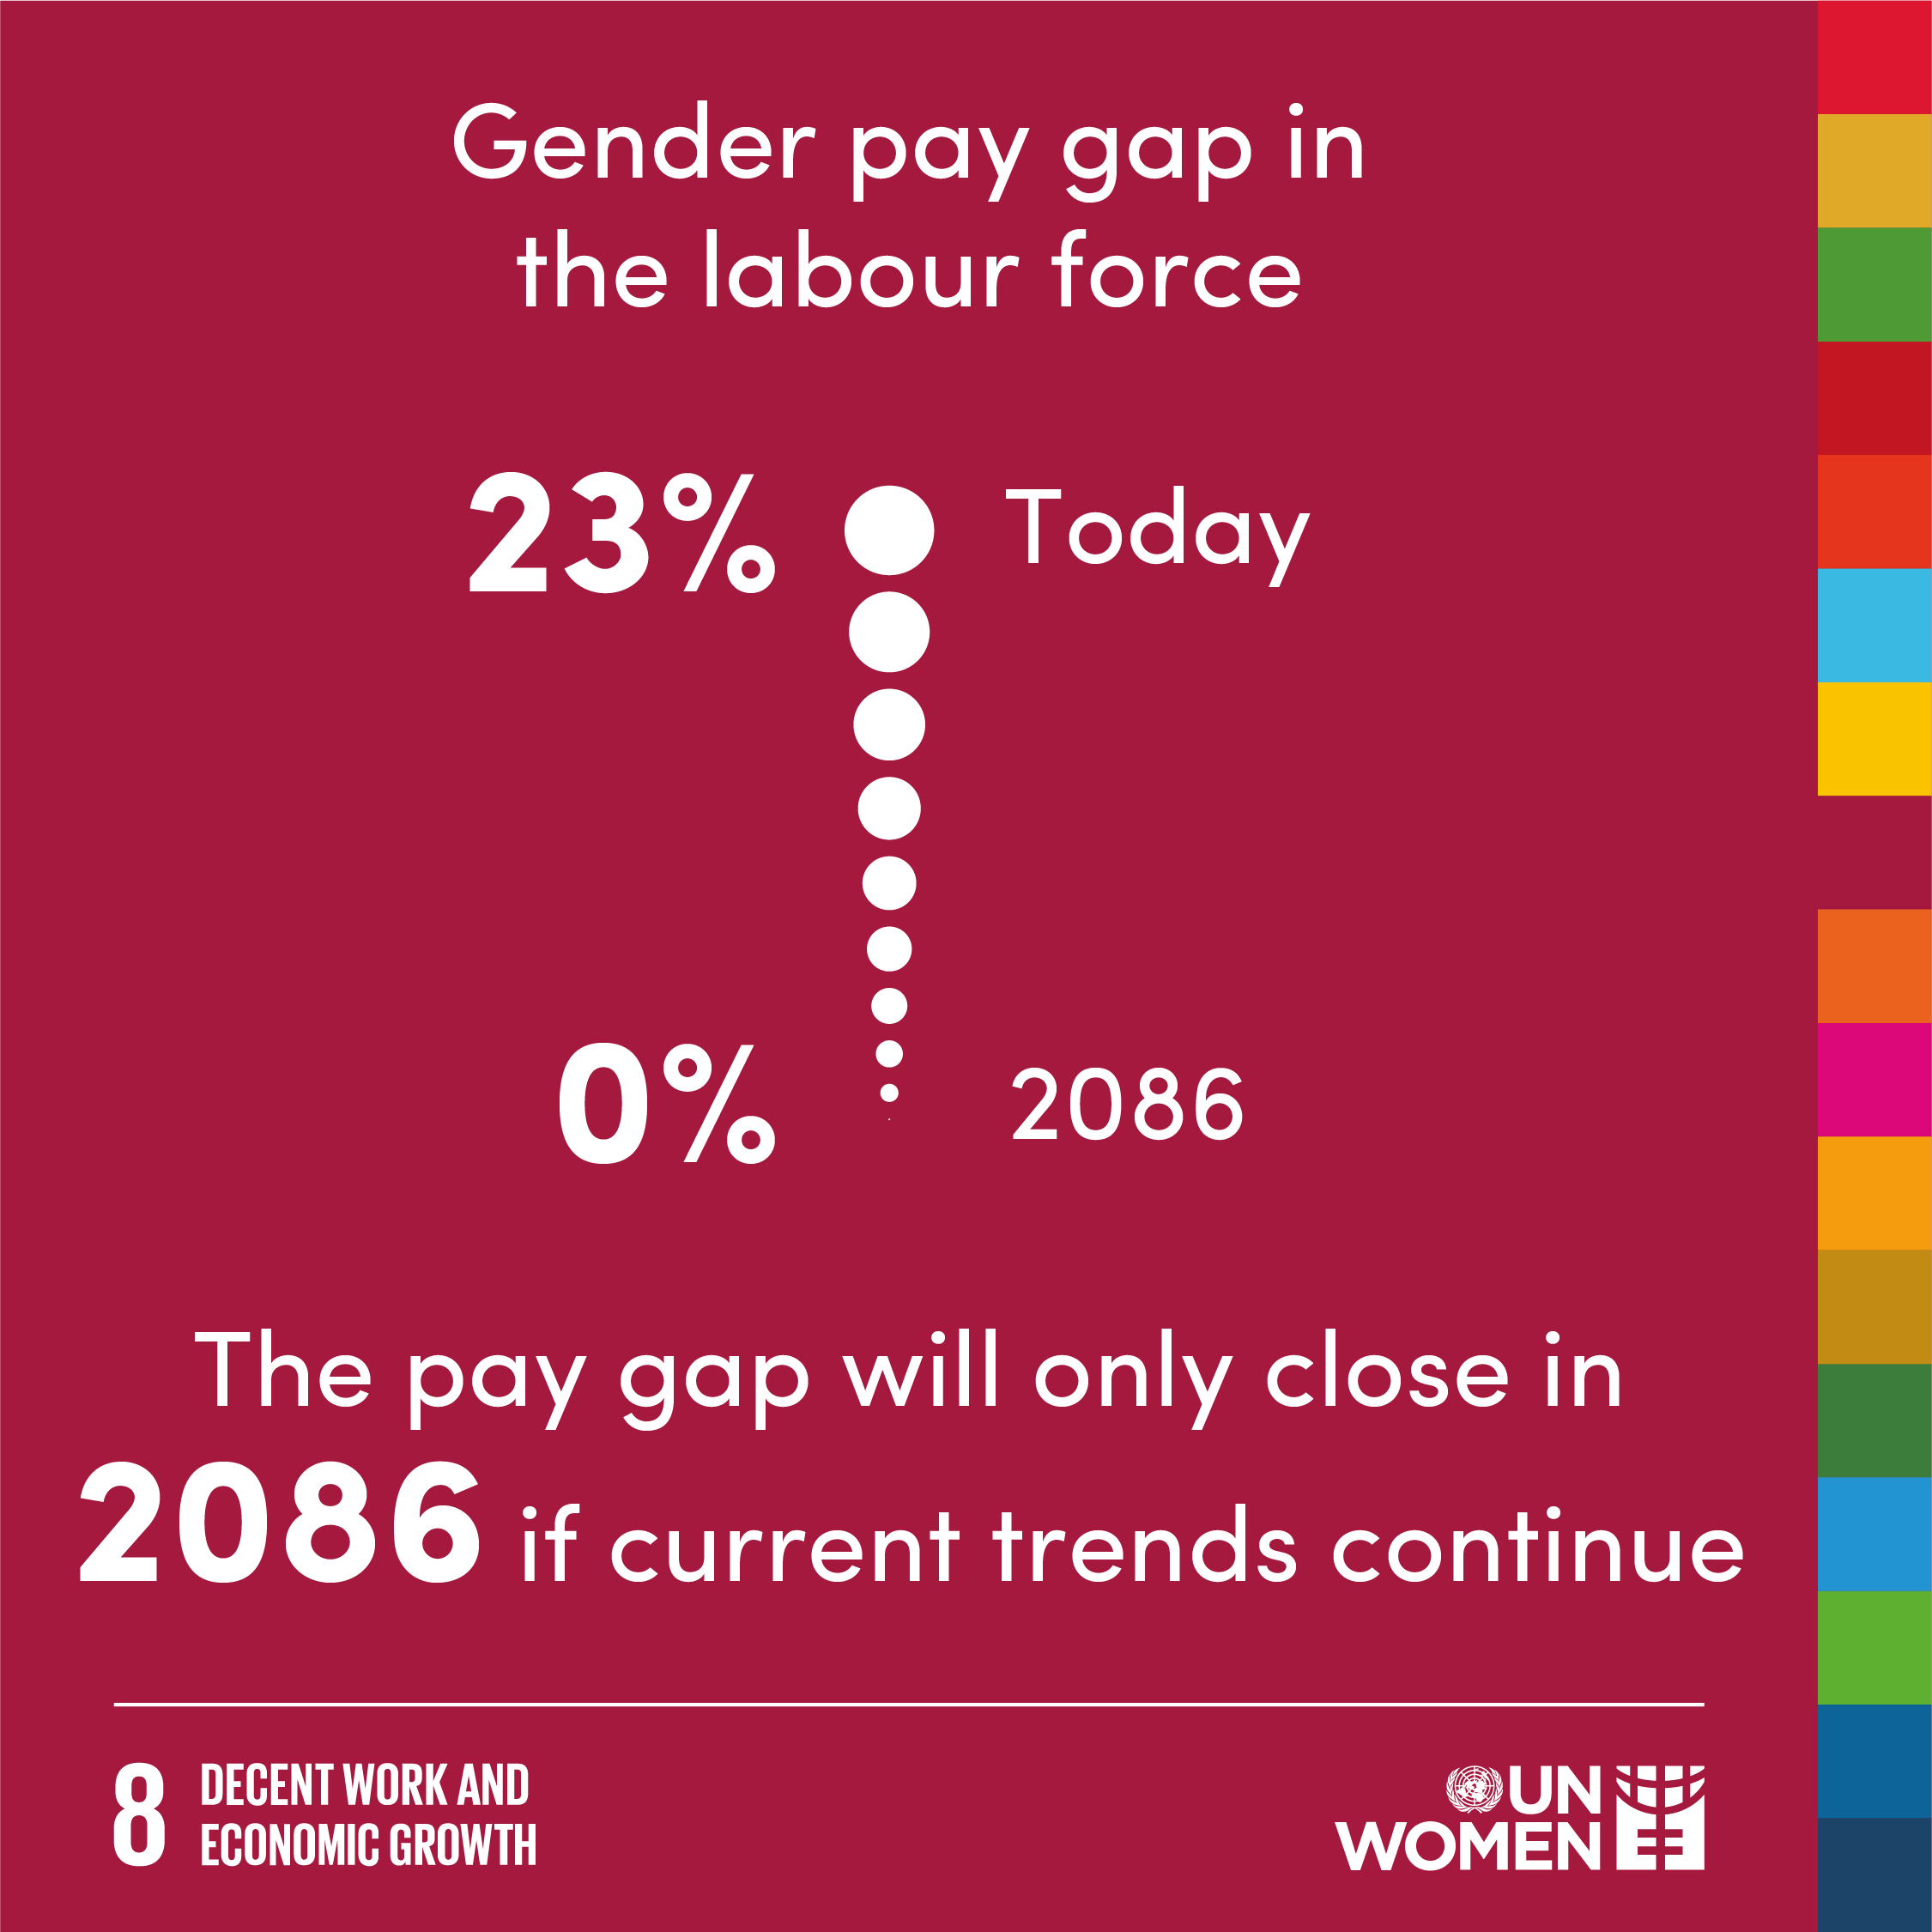 The gender pay gap in the labour force will only close in 2086 if current trends continue.